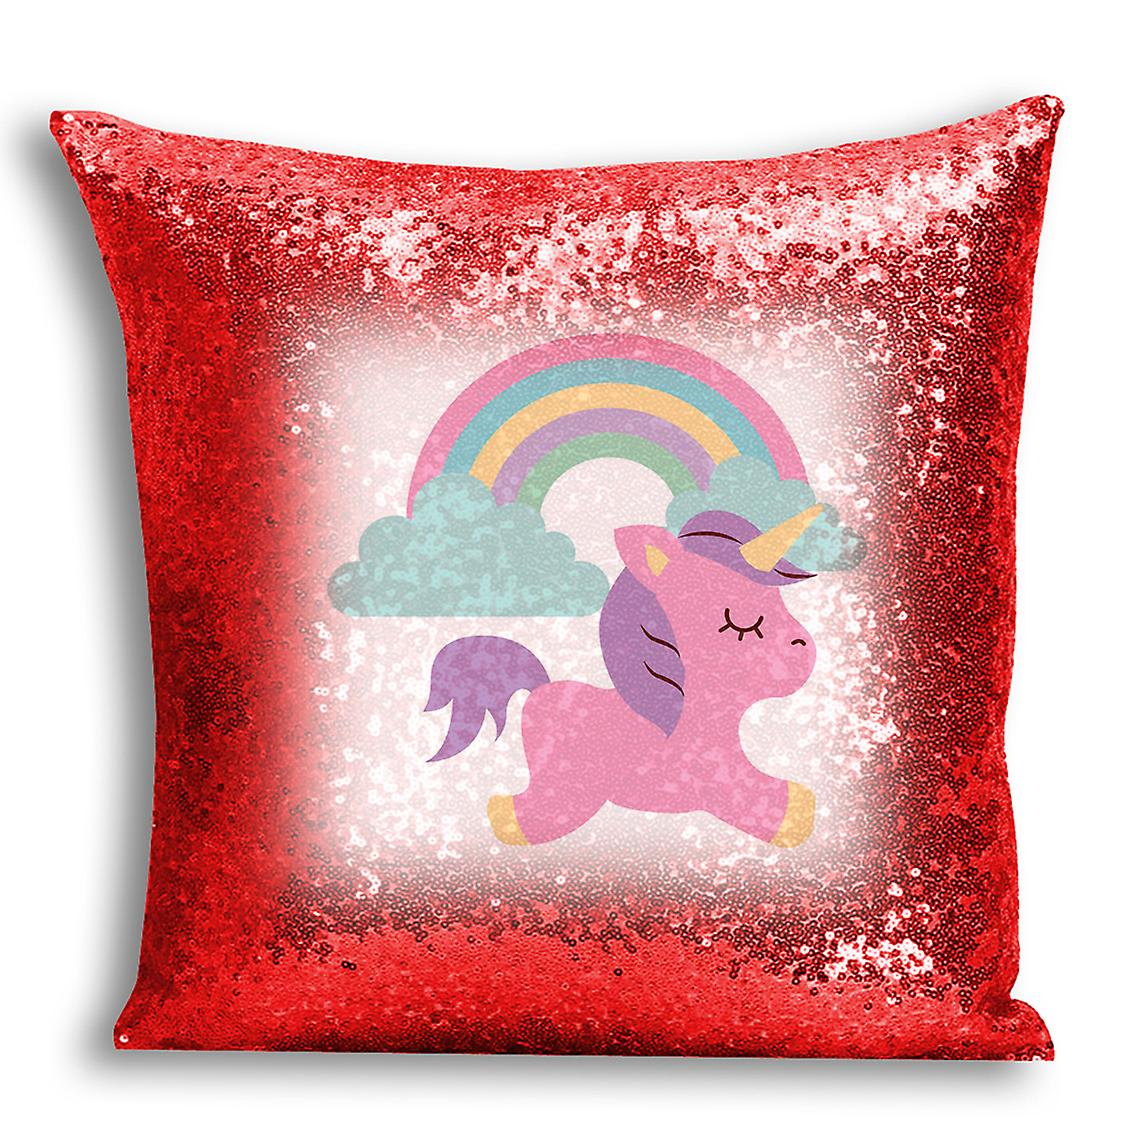 Cover Home Sequin For tronixsUnicorn Decor With CushionPillow Inserted I Printed Design 4 Red 8nvmwN0